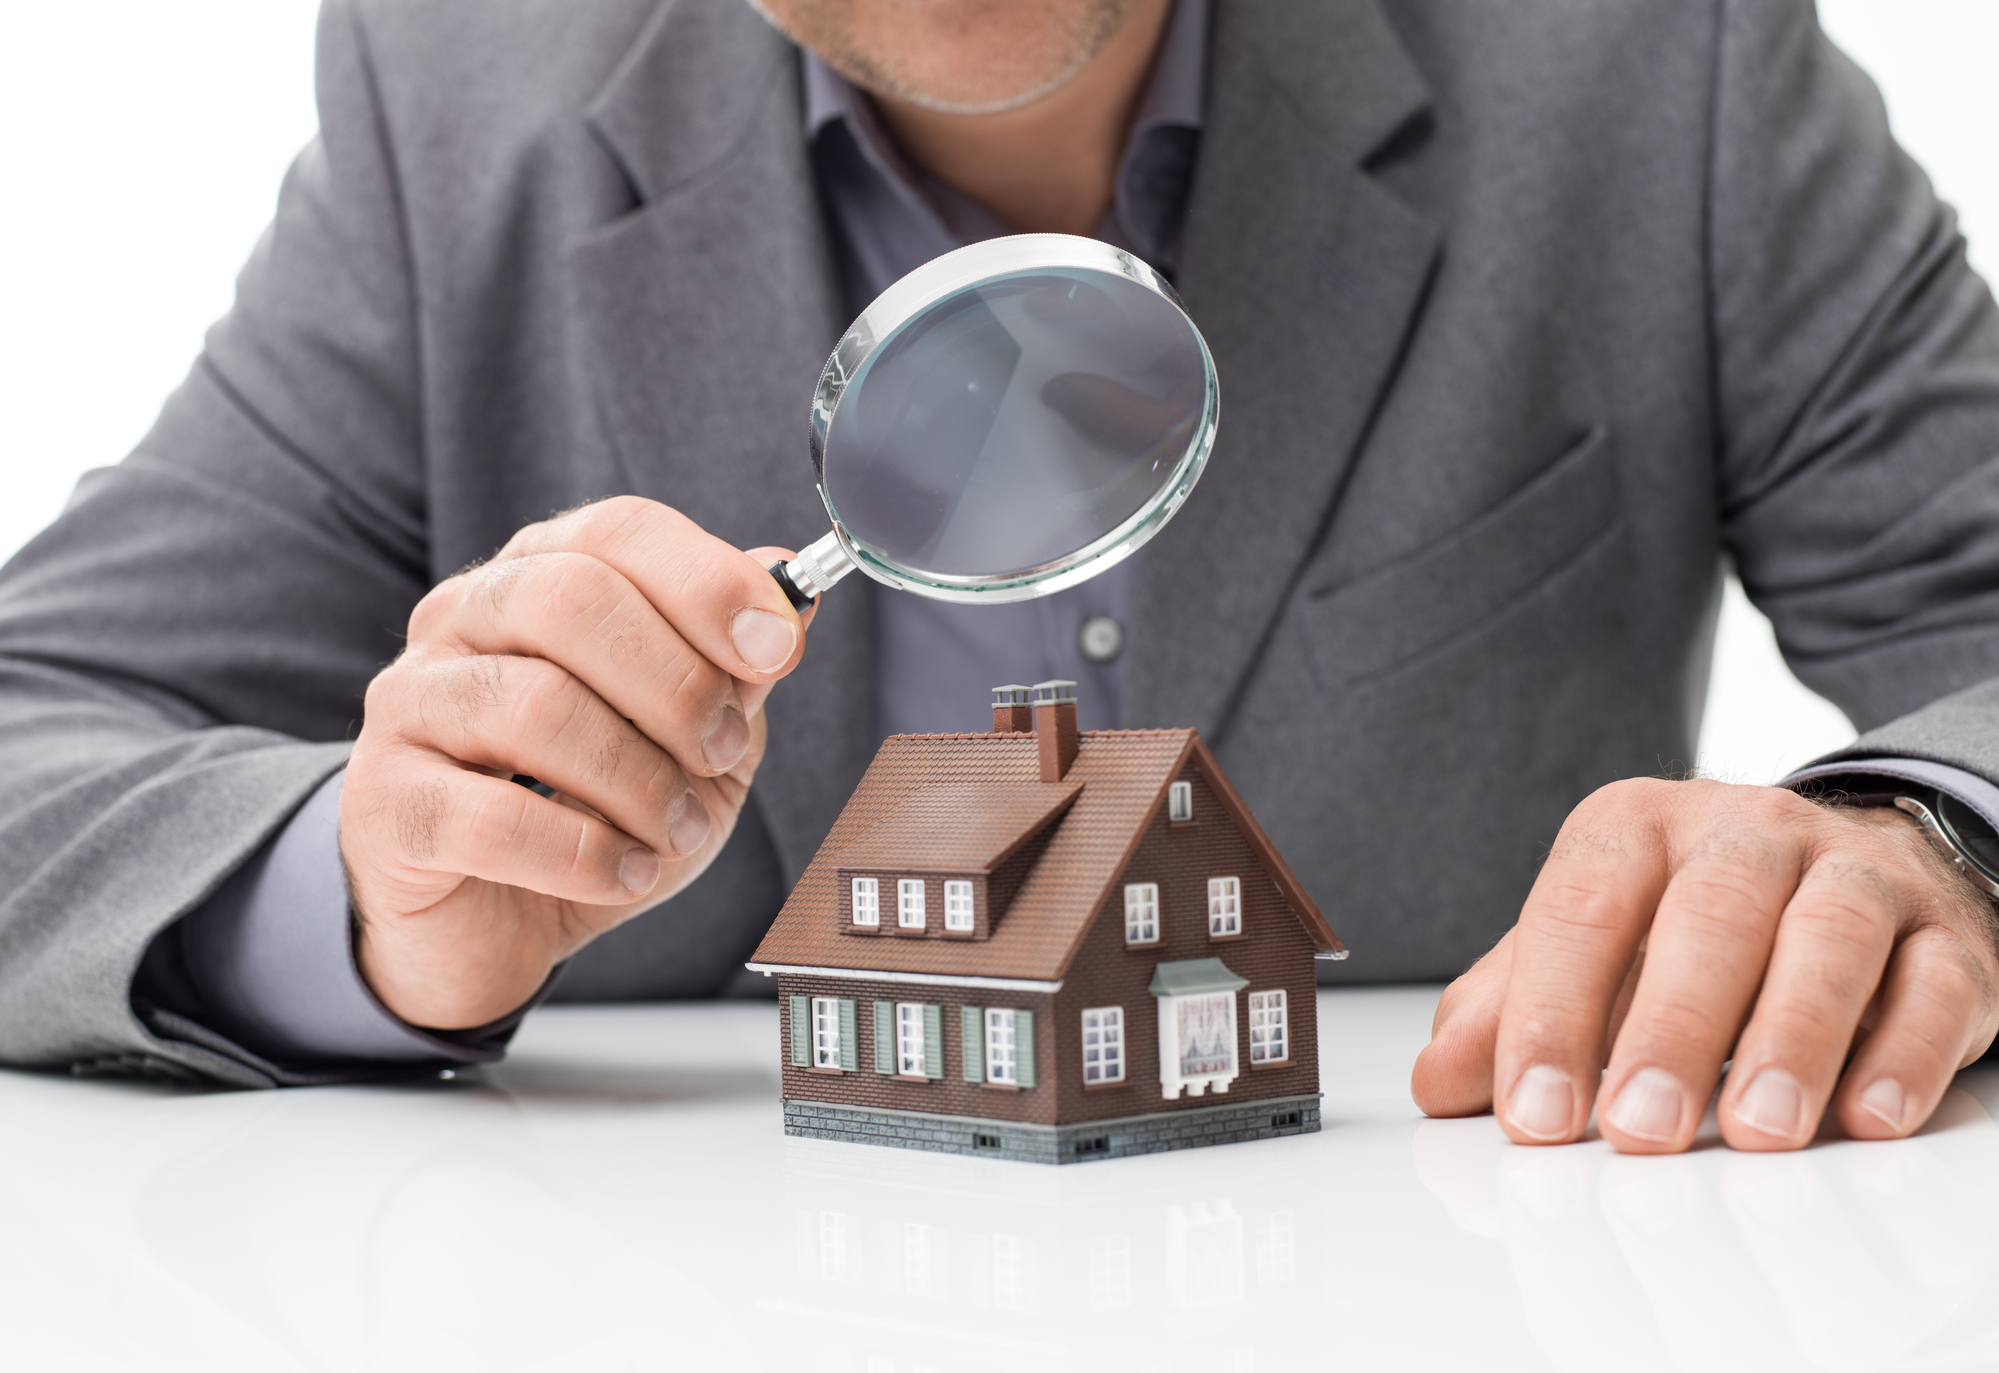 House inspection and real estate concept